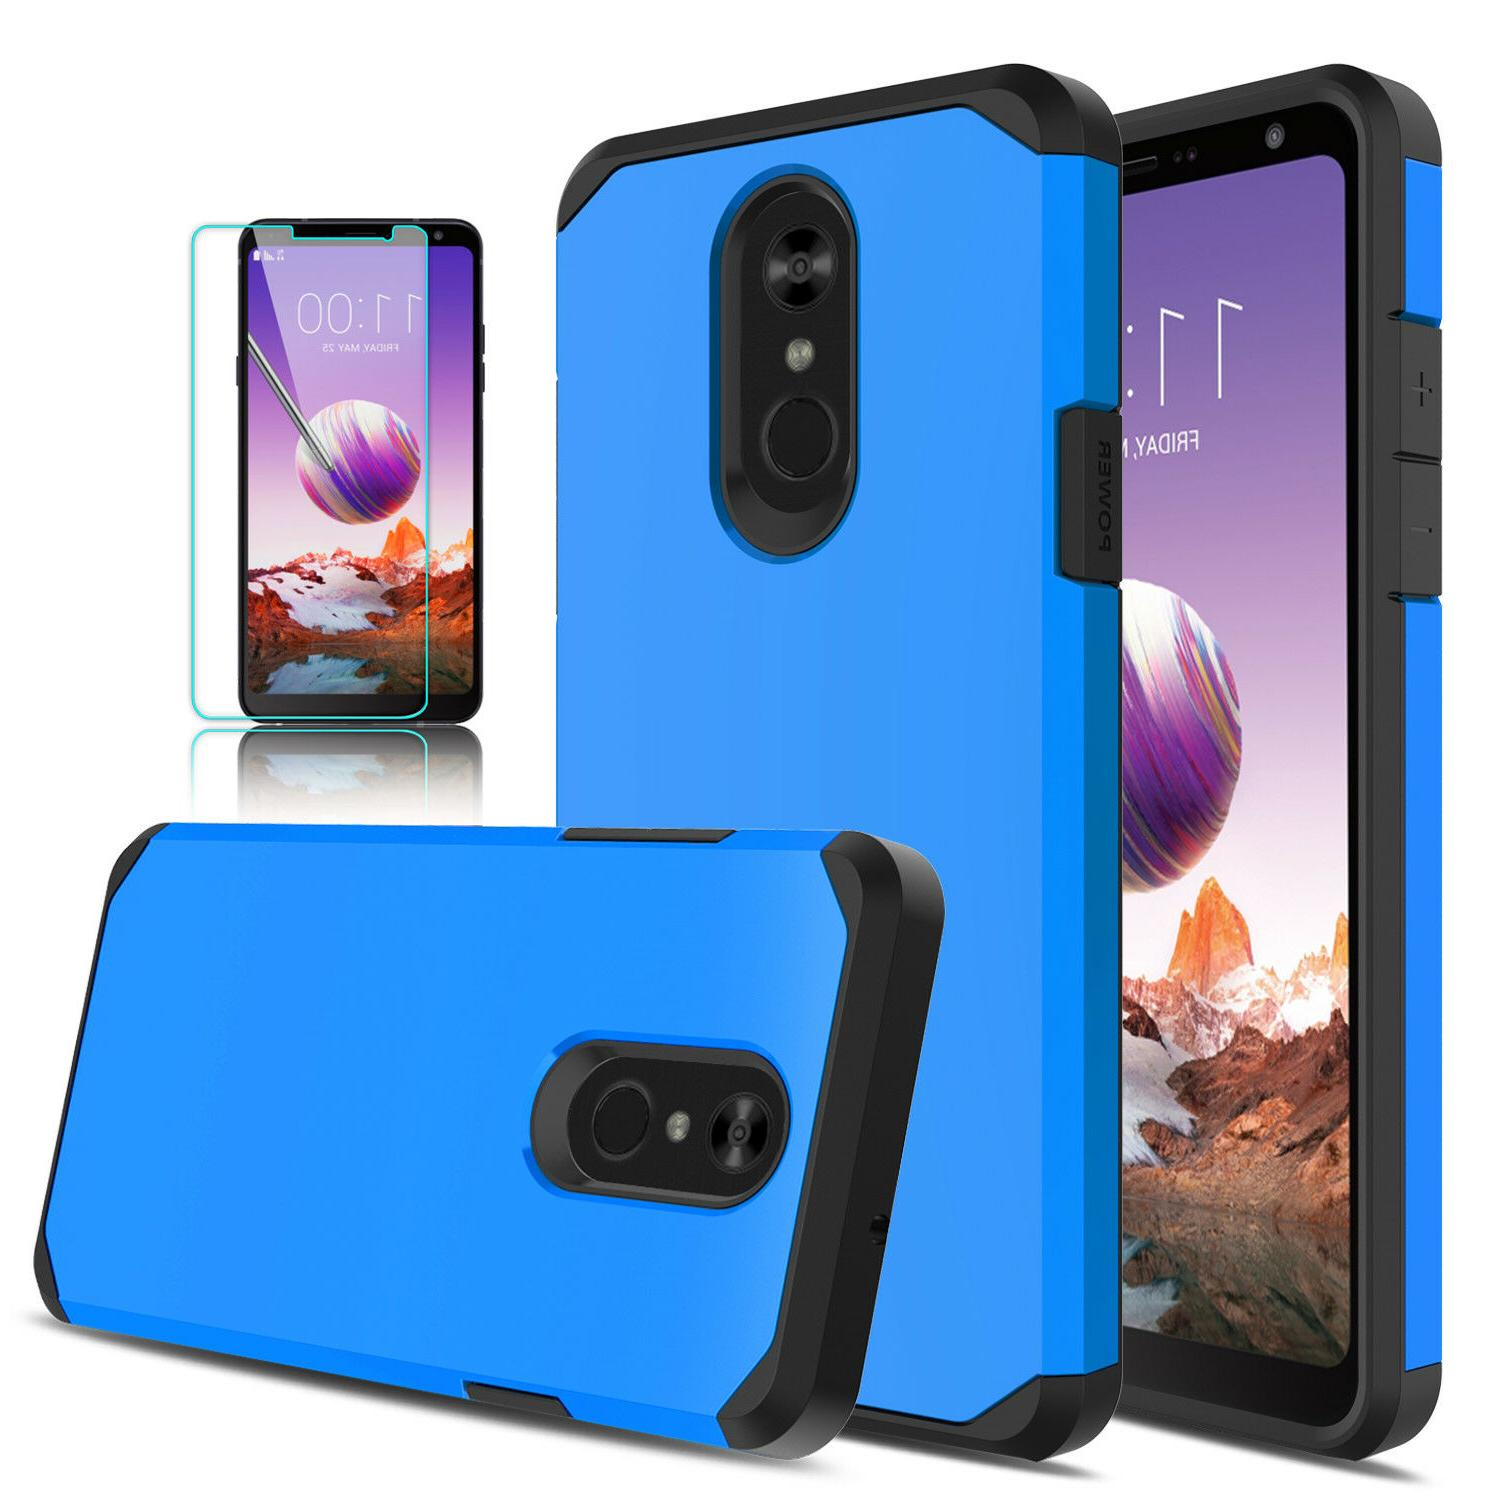 4/4+ Plus Cover/Tempered Glass Screen Protector